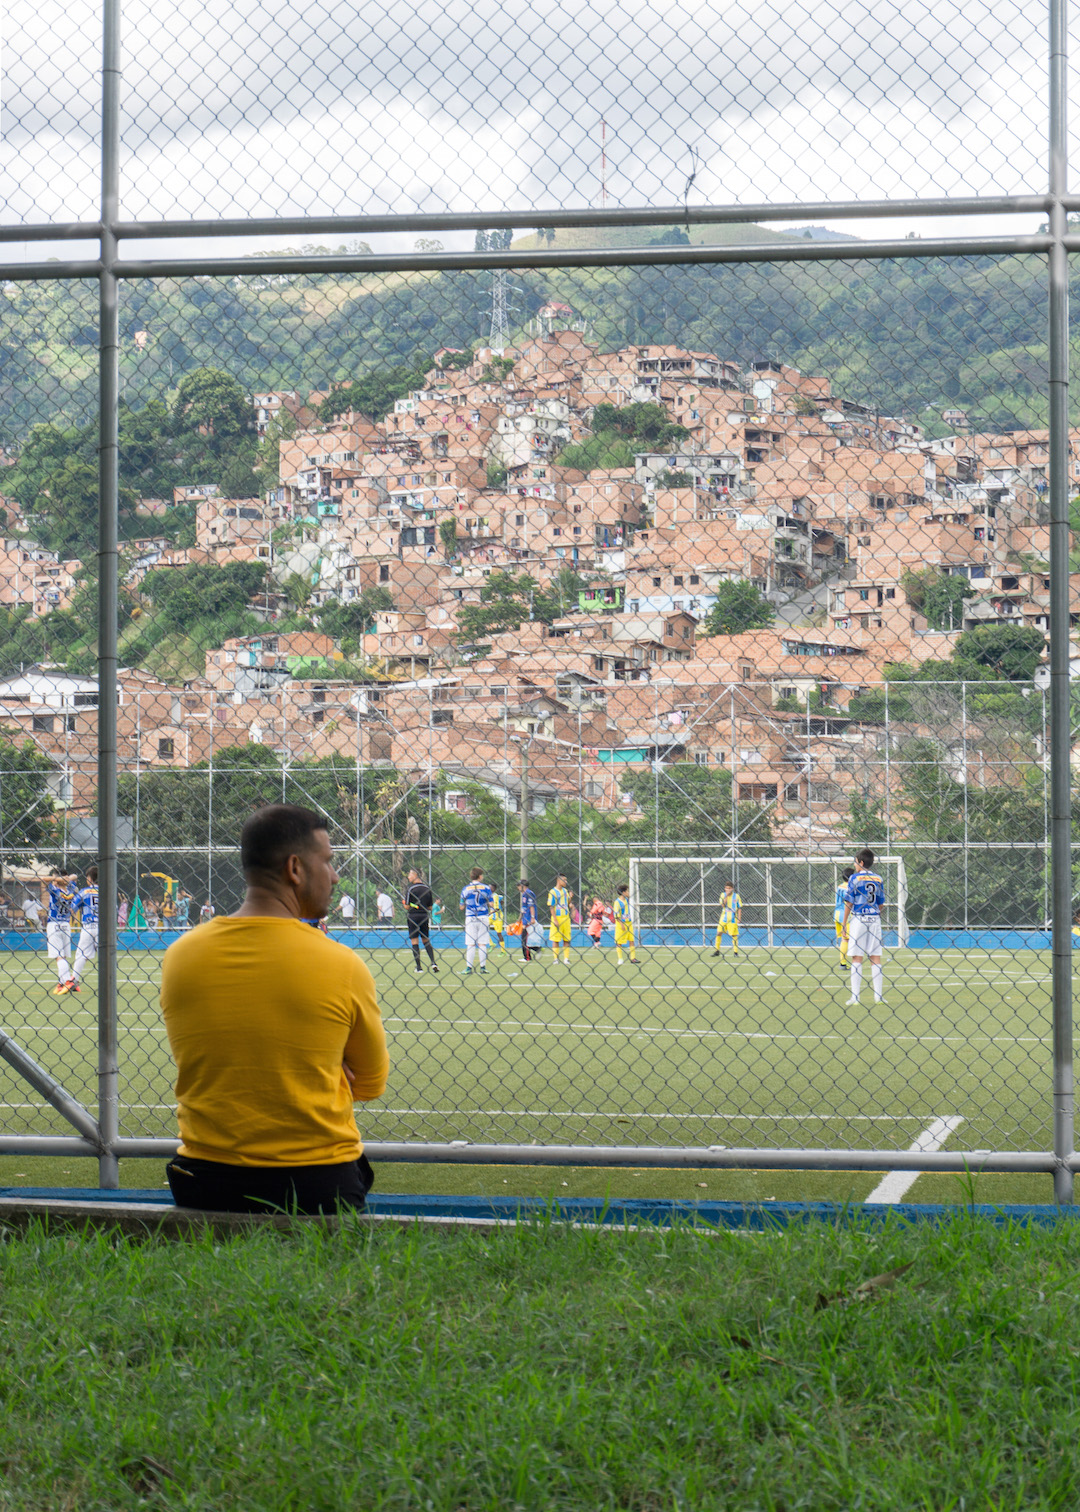 Locals in Communa 13, Medellin